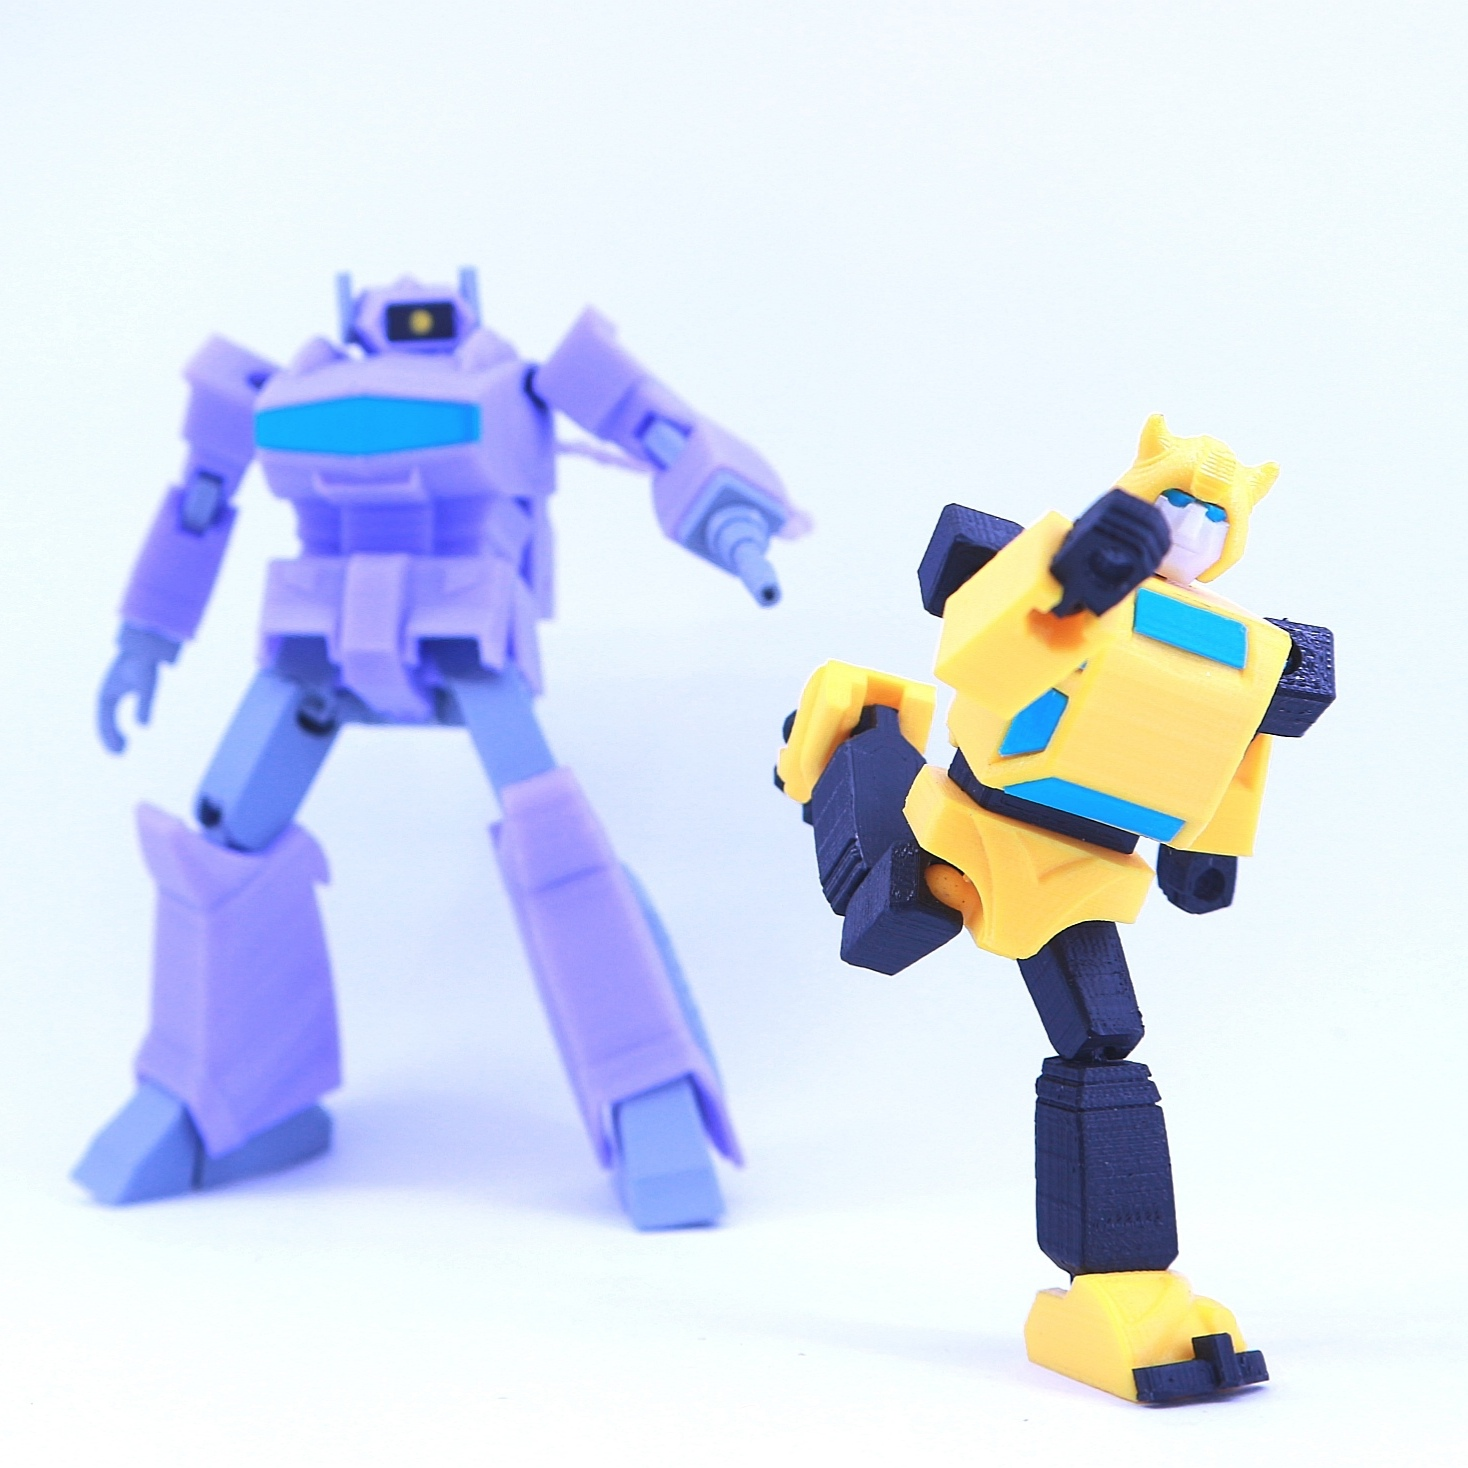 bee8.jpg Download free STL file ARTICULATED G1 TRANSFORMERS BUMBLEBEE - NO SUPPORT • 3D printing model, Toymakr3D